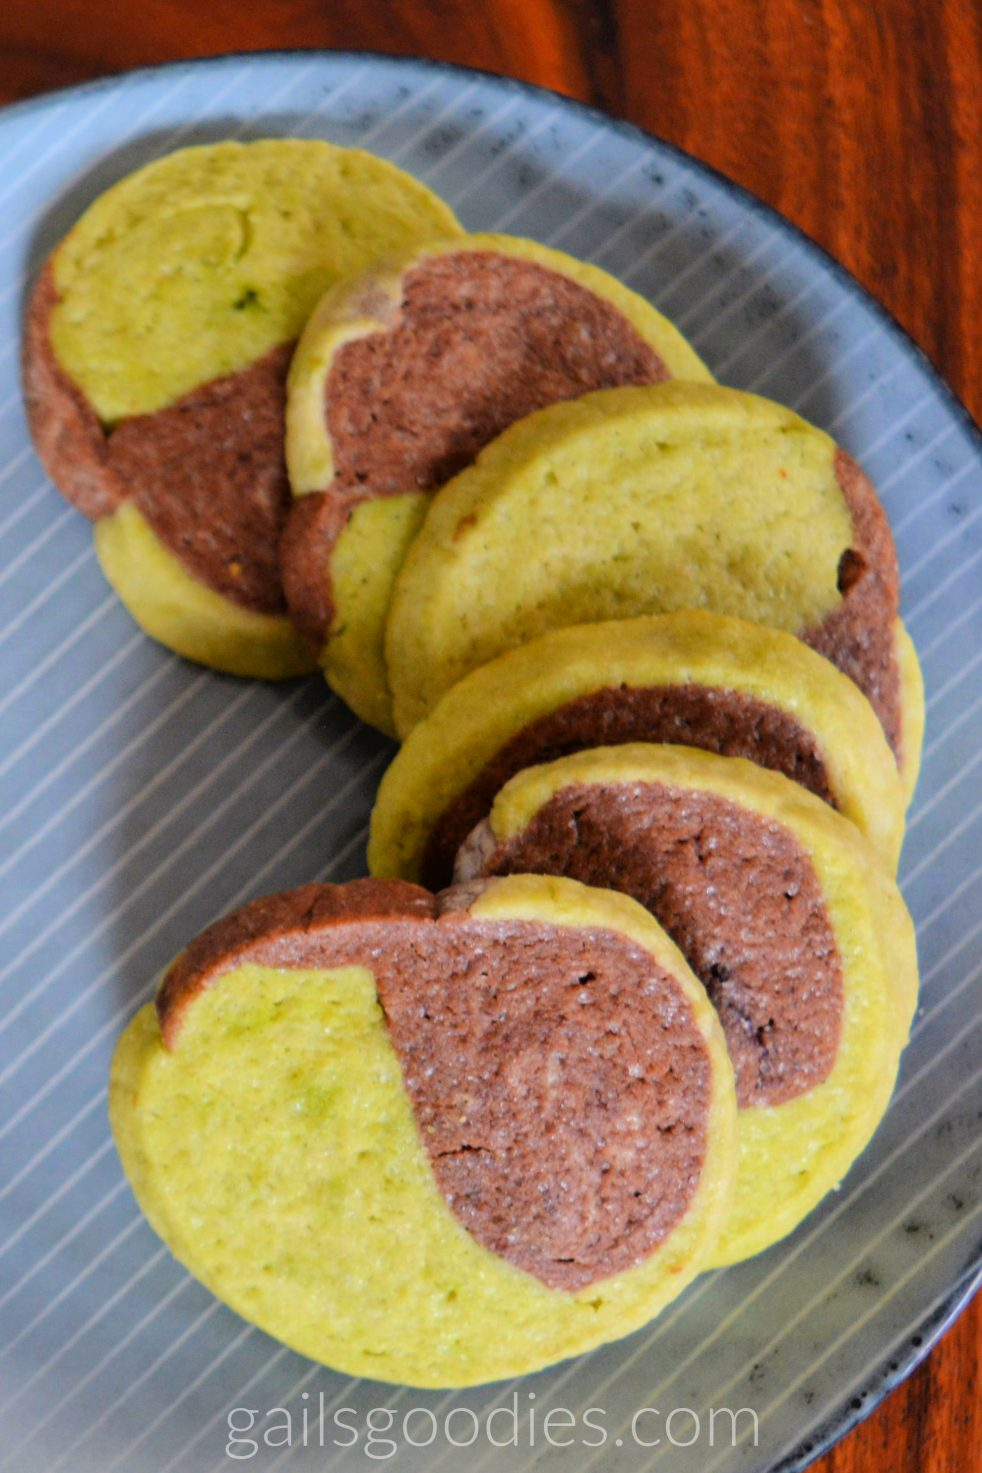 Six green tea chocolate sugar cookies are arranged in a curve along the right side of a grey plate. The round cookies are lime green on one side and milk chocolate on the other.